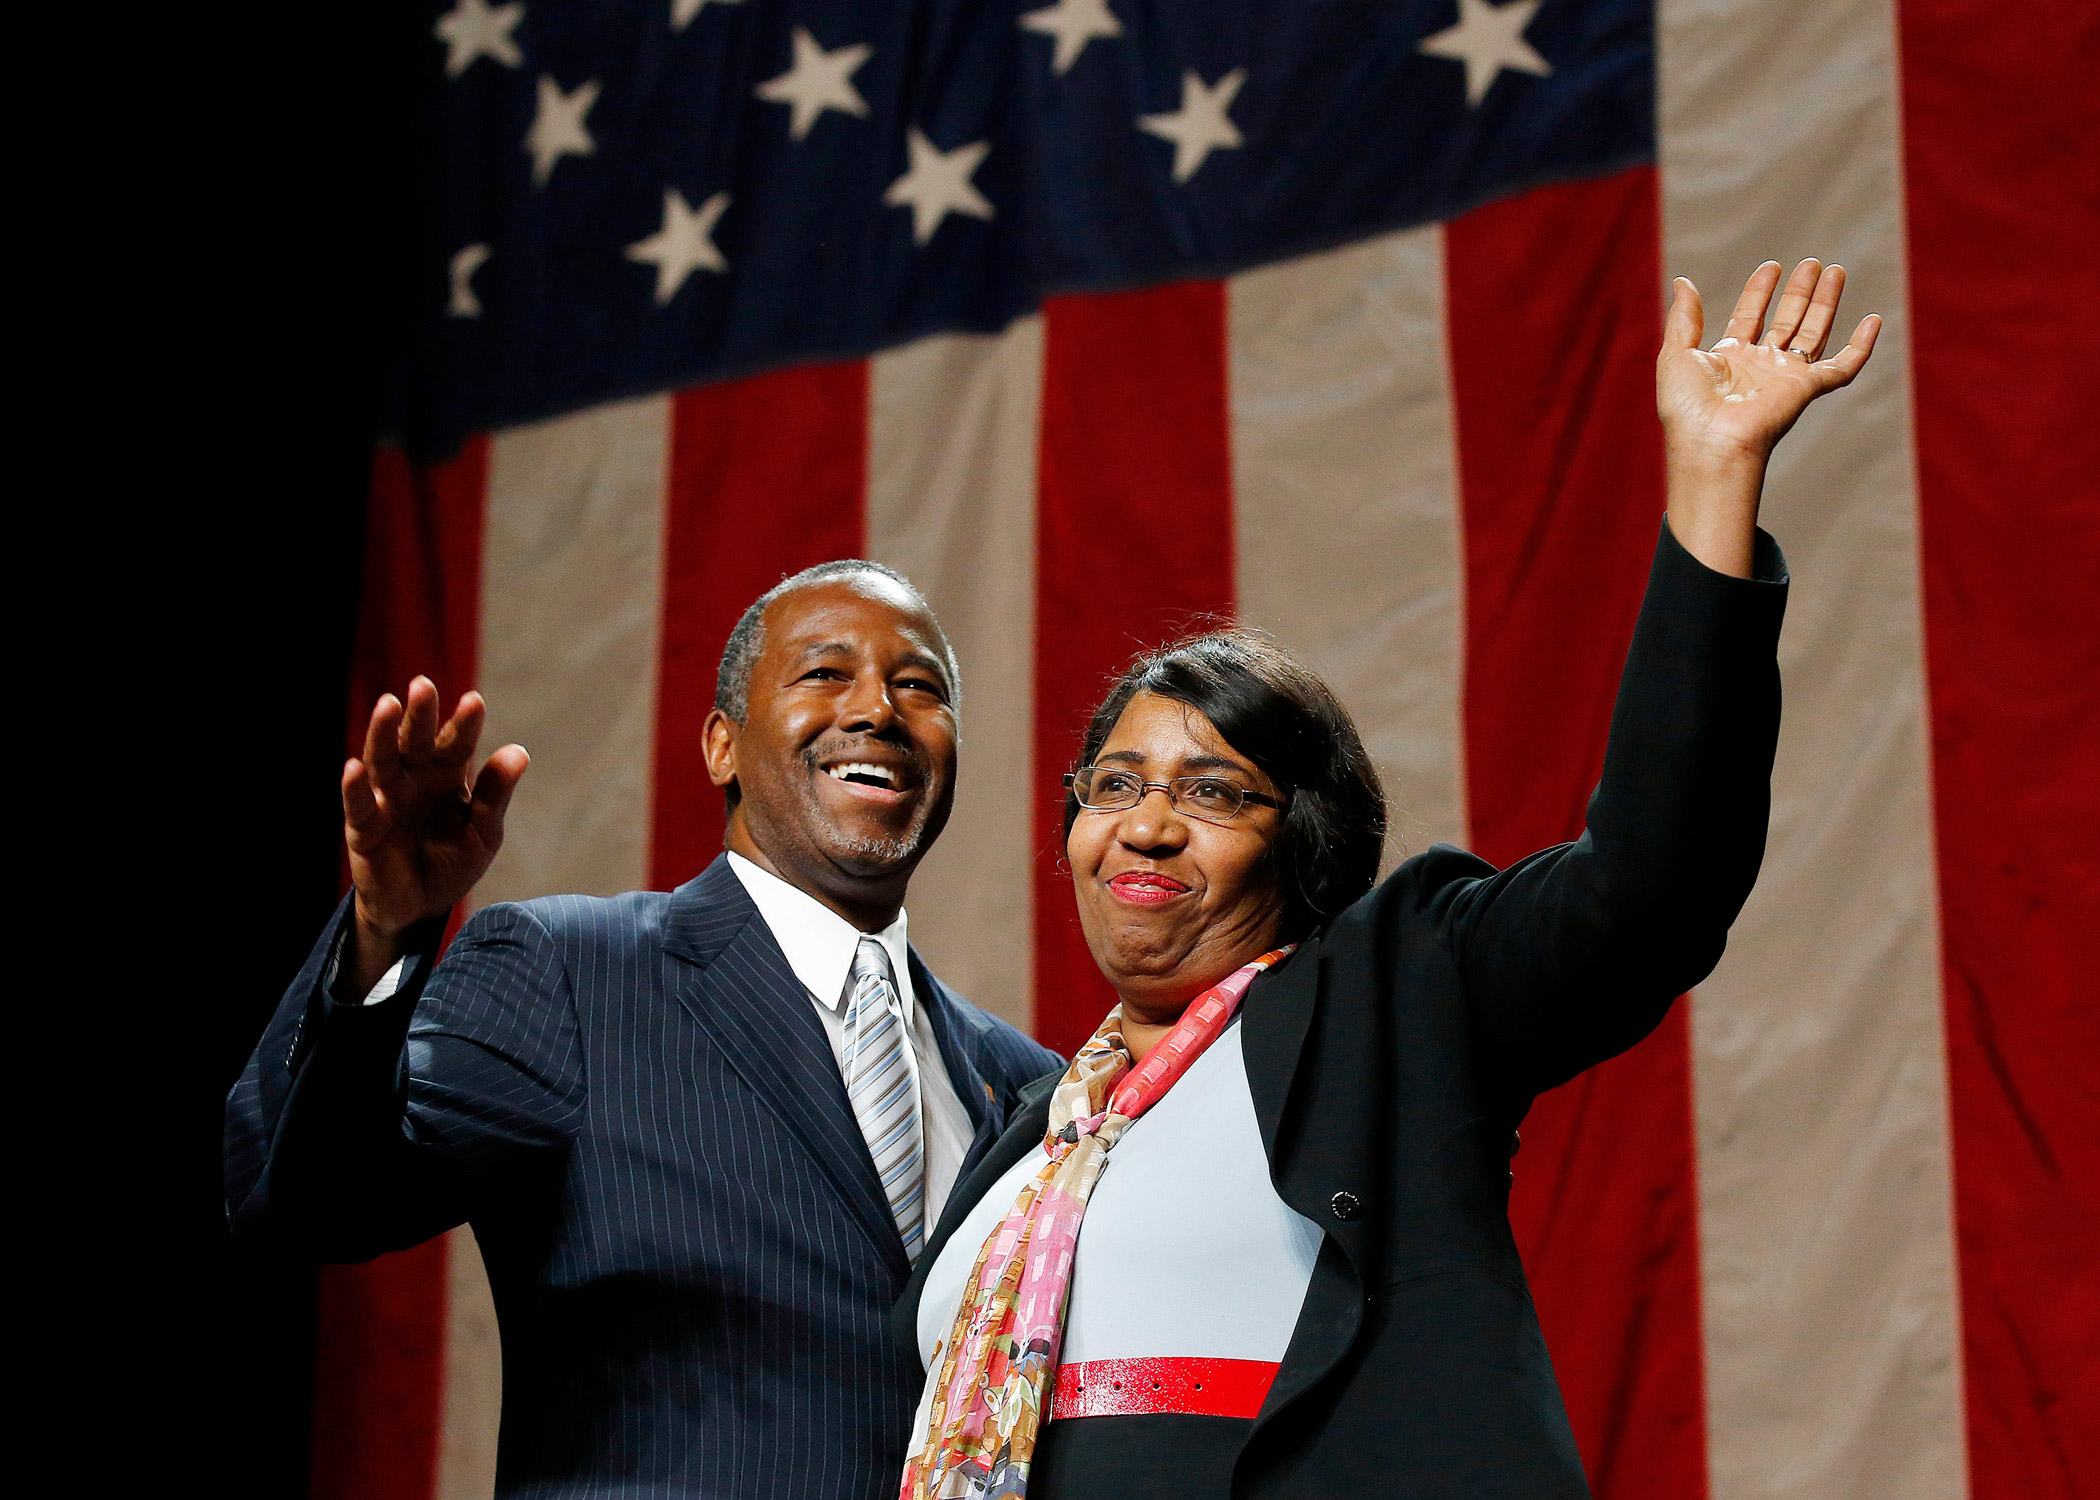 Ben Carson and his wife Candy on Aug. 18, 2015 in Phoenix.